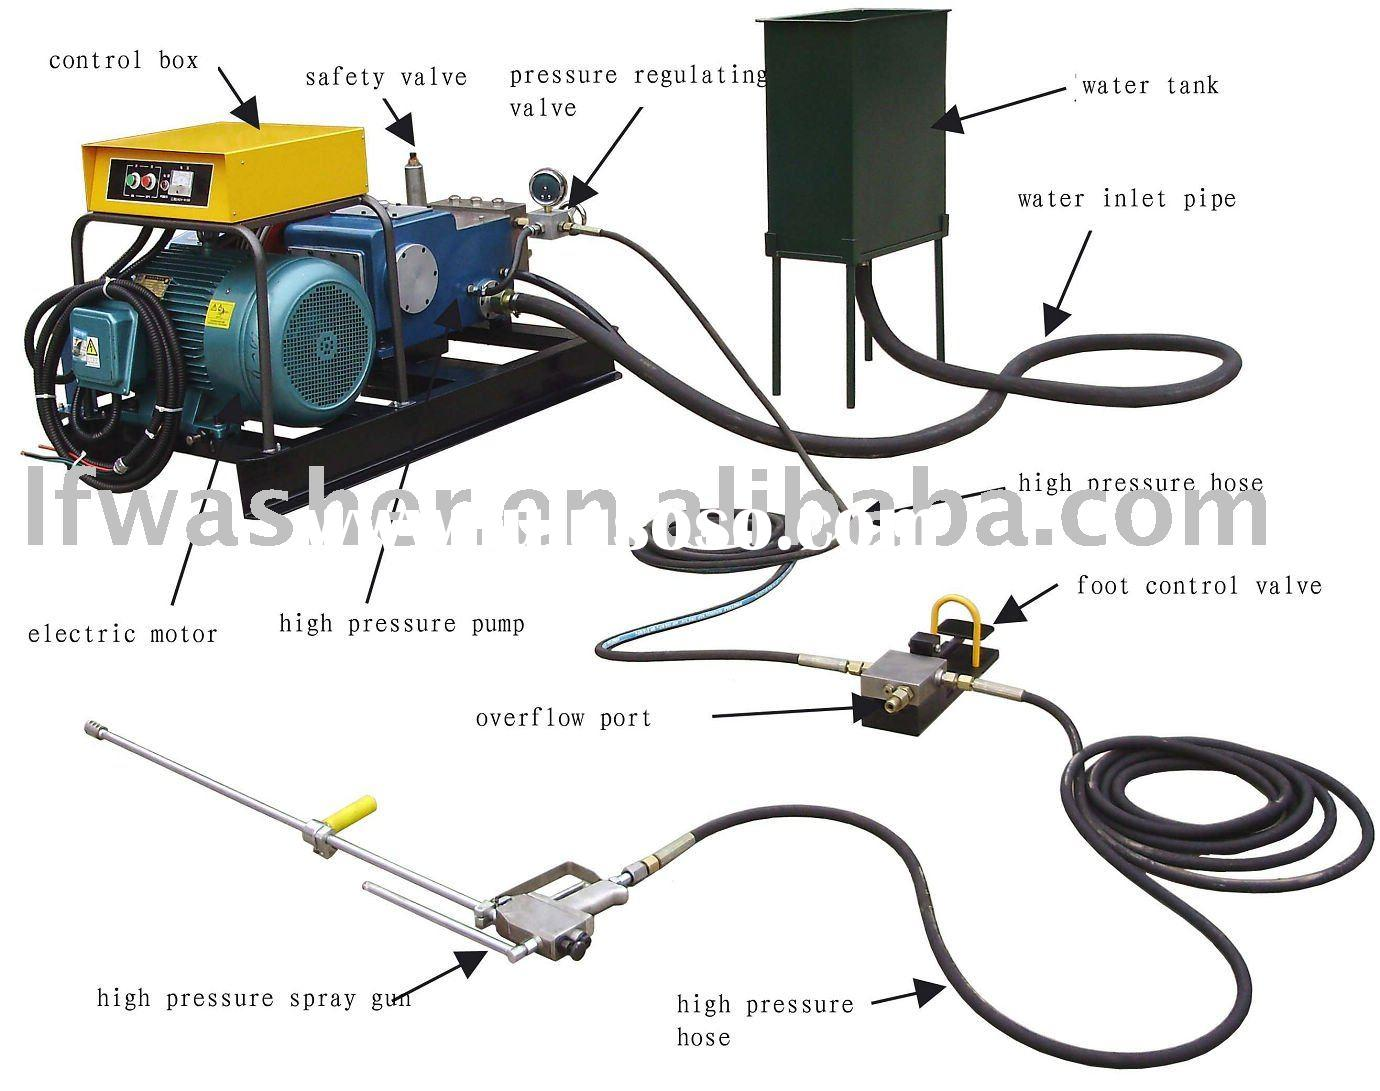 LF-20/50 Industrial high pressure washer, water jetting cleaning equipment,